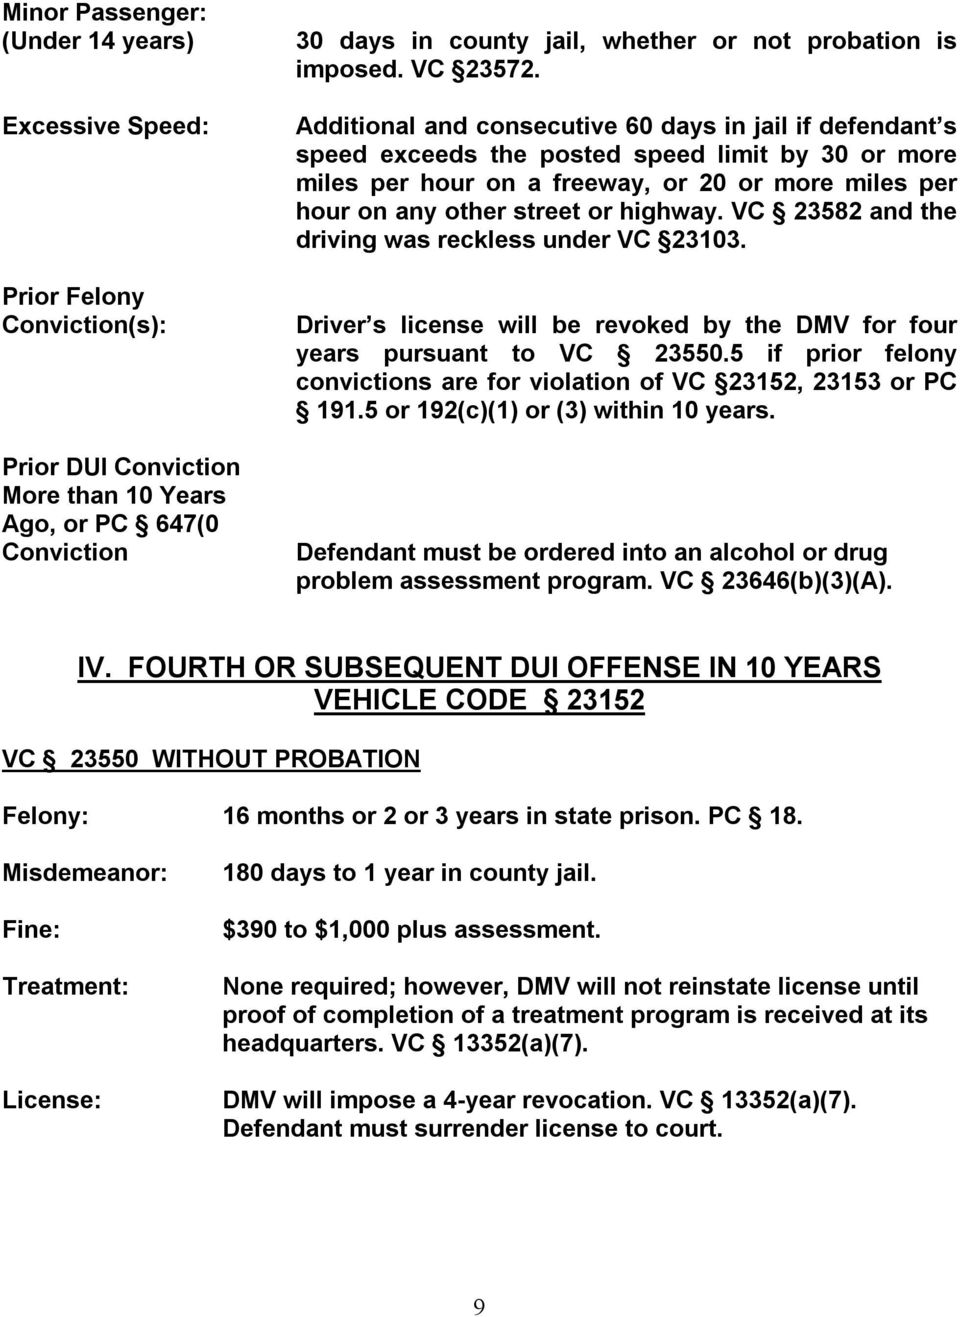 Additional and consecutive 60 days in jail if defendant s speed exceeds the posted speed limit by 30 or more miles per hour on a freeway, or 20 or more miles per hour on any other street or highway.